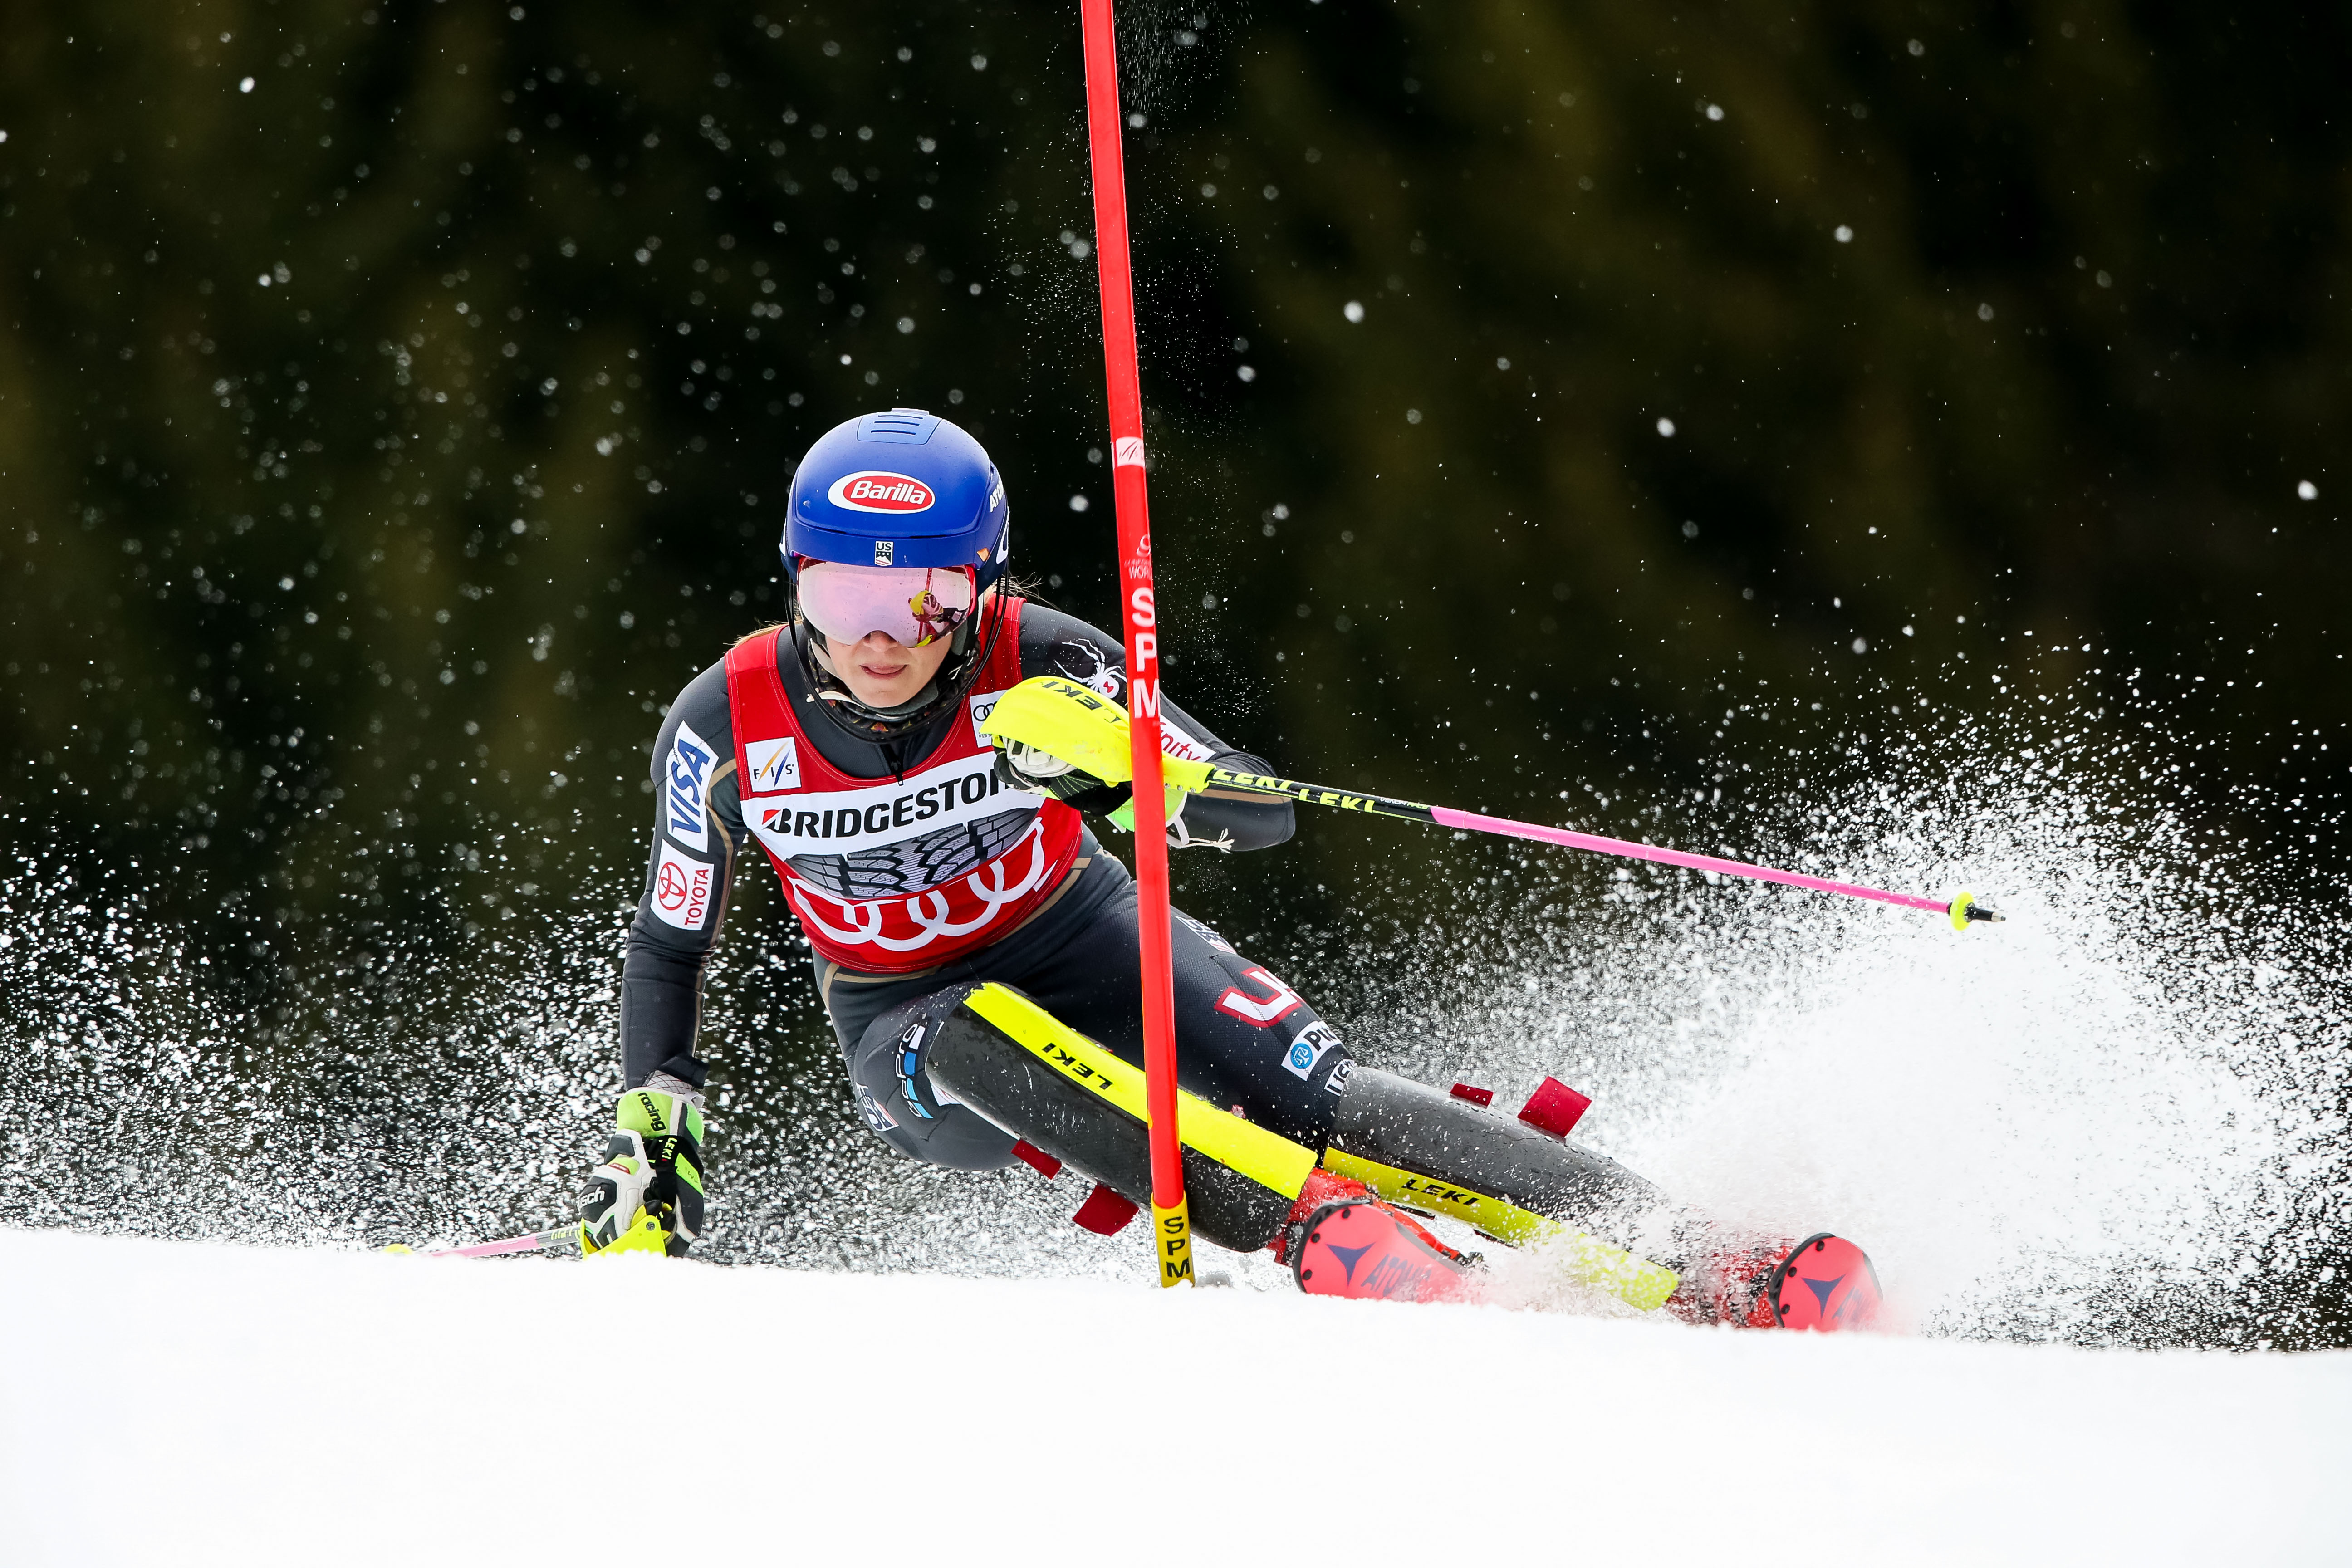 Mikaela Shiffrin won her 42nd World Cup race Saturday in Ofterschwang, Germany. (Getty Images/Agence Zoom - Christophe Pallot)